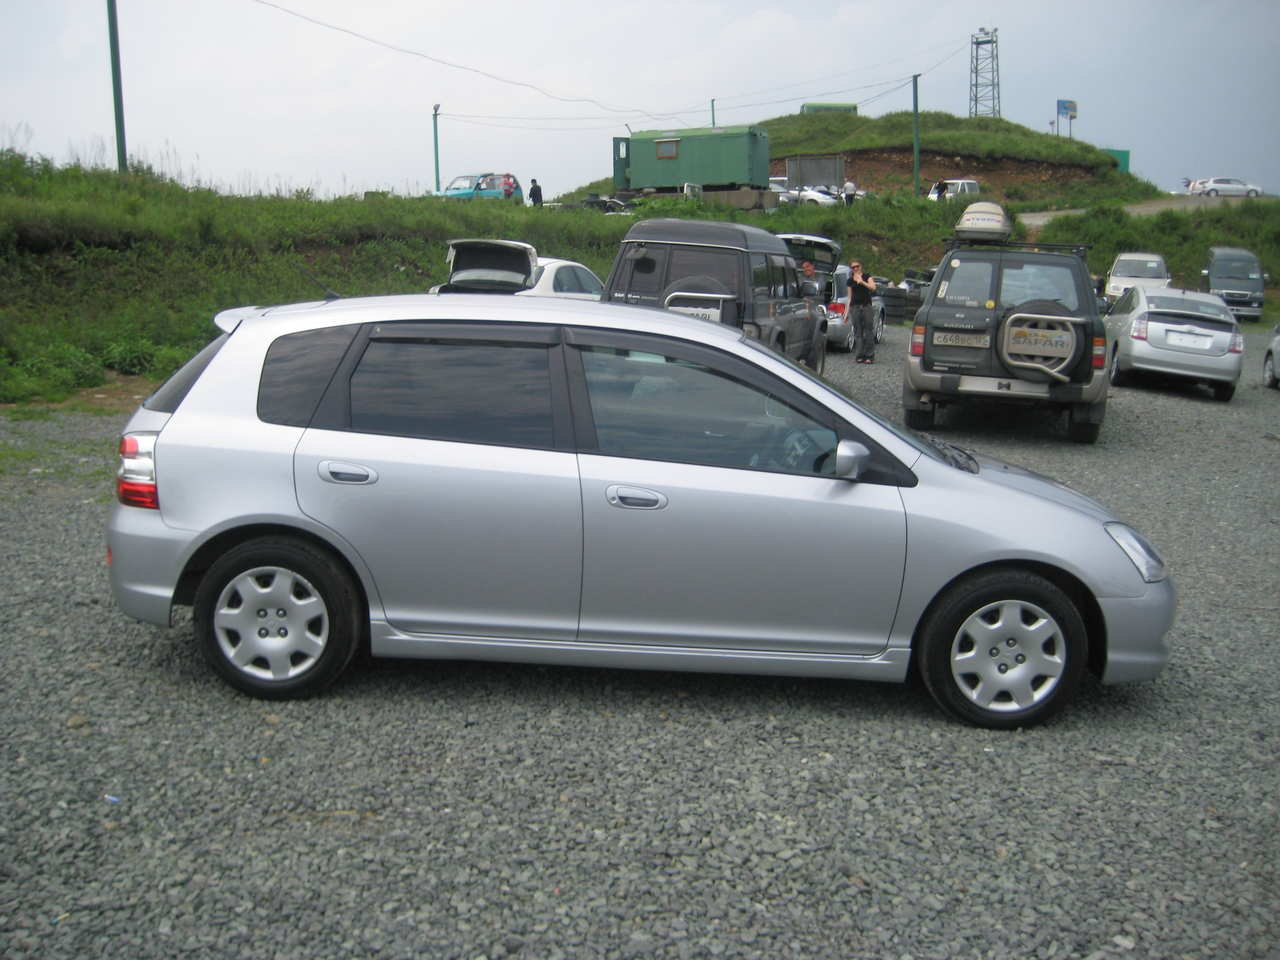 2005 honda civic pictures gasoline ff automatic for Honda civic overheating